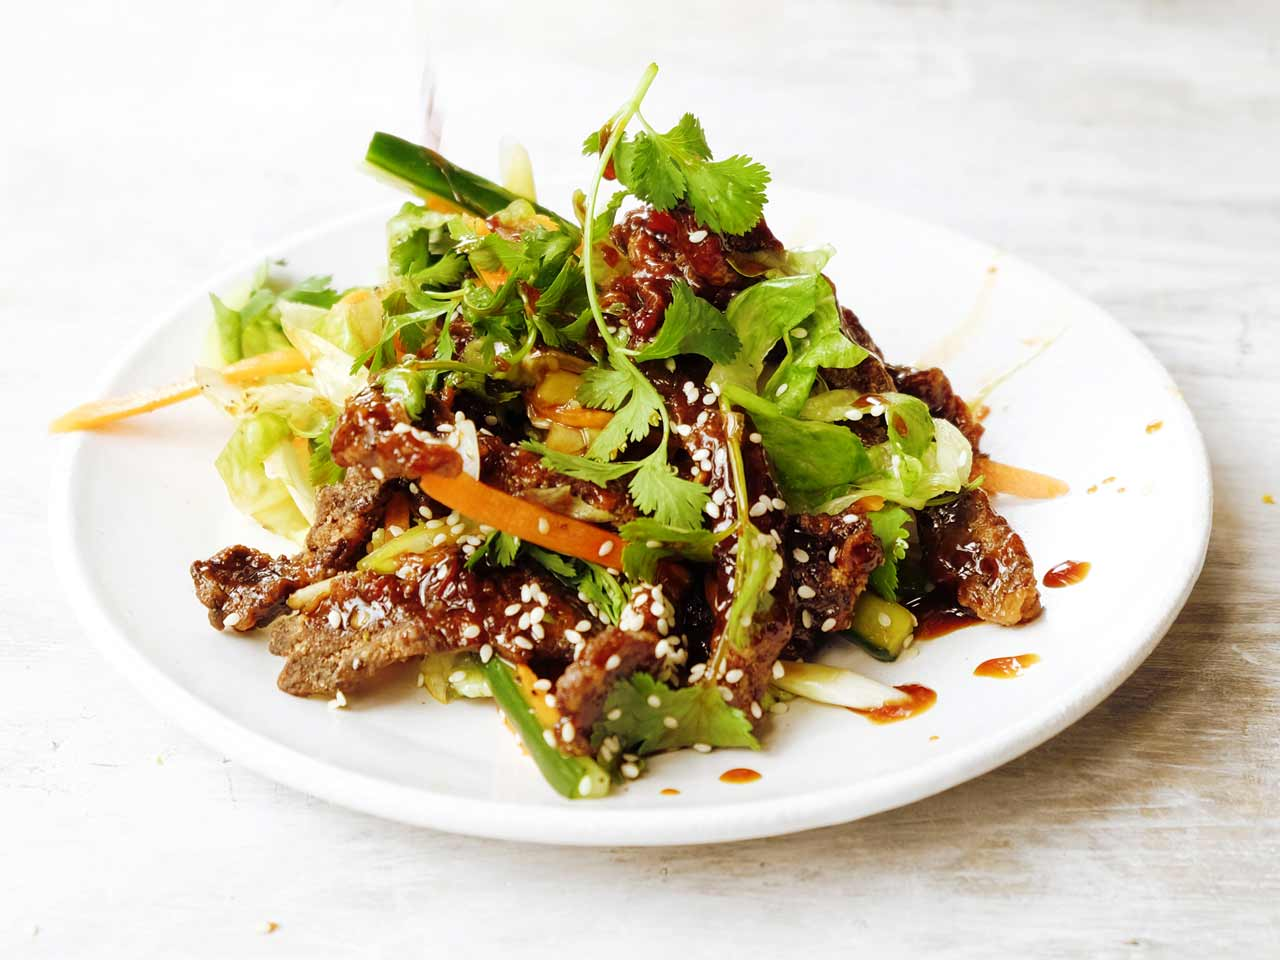 Chinese-style crispy beef salad